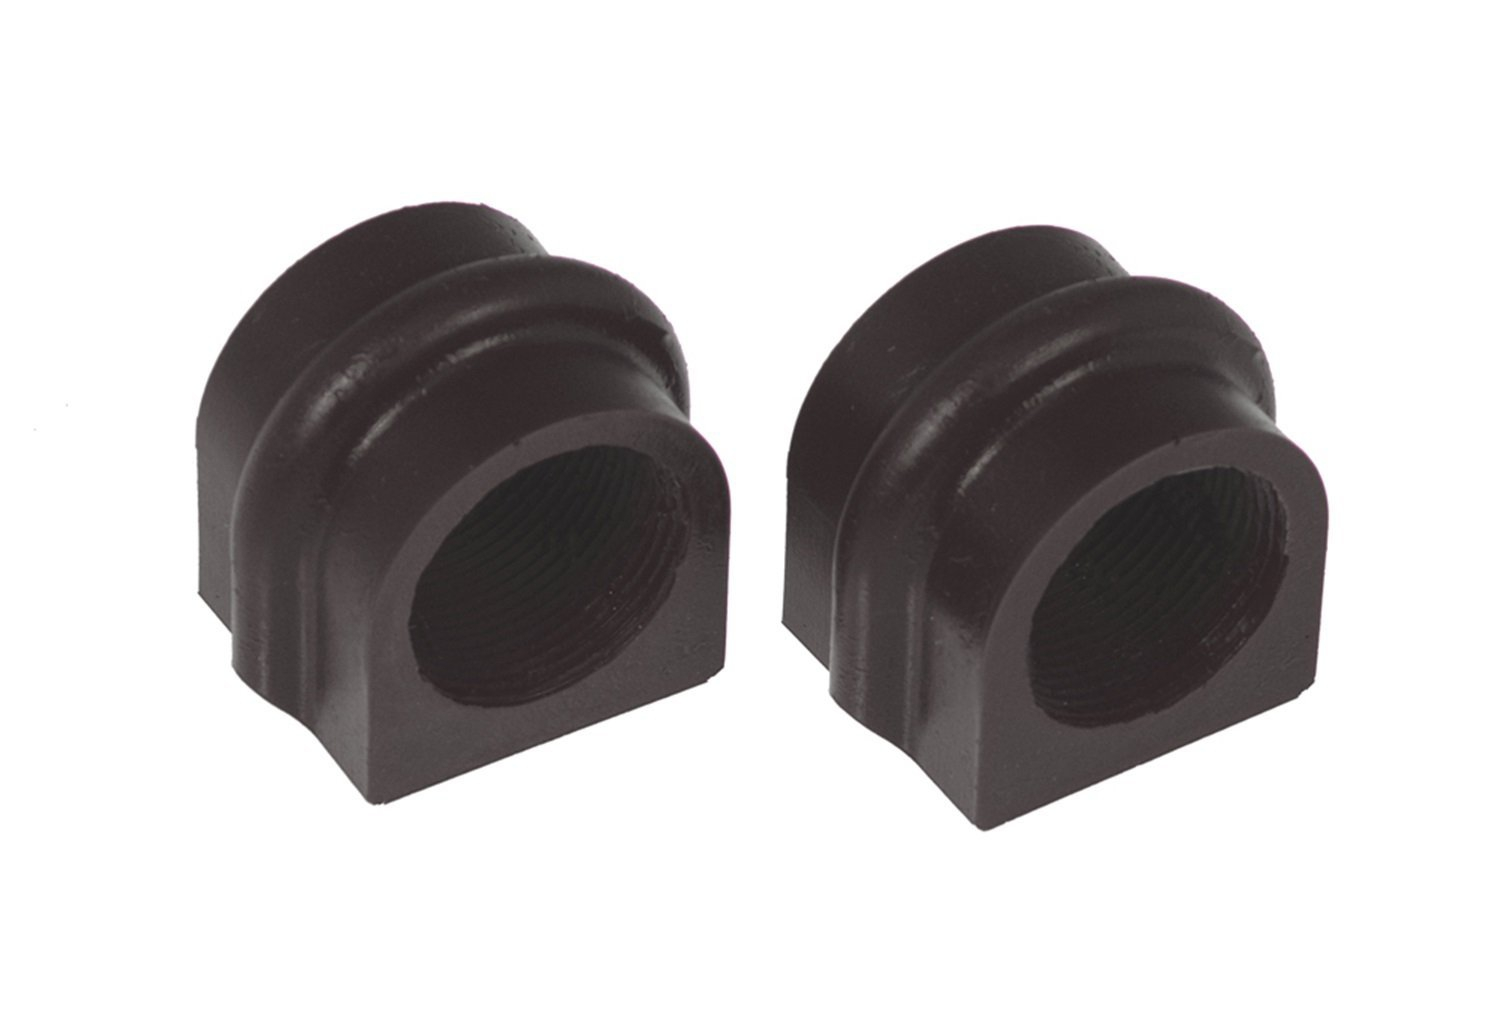 "Prothane 14-1124-BL Front Sway Bar Bushing Kit, 1 1/4"", 32mm Bar Black - Nissan 350Z 03-08 Z33"